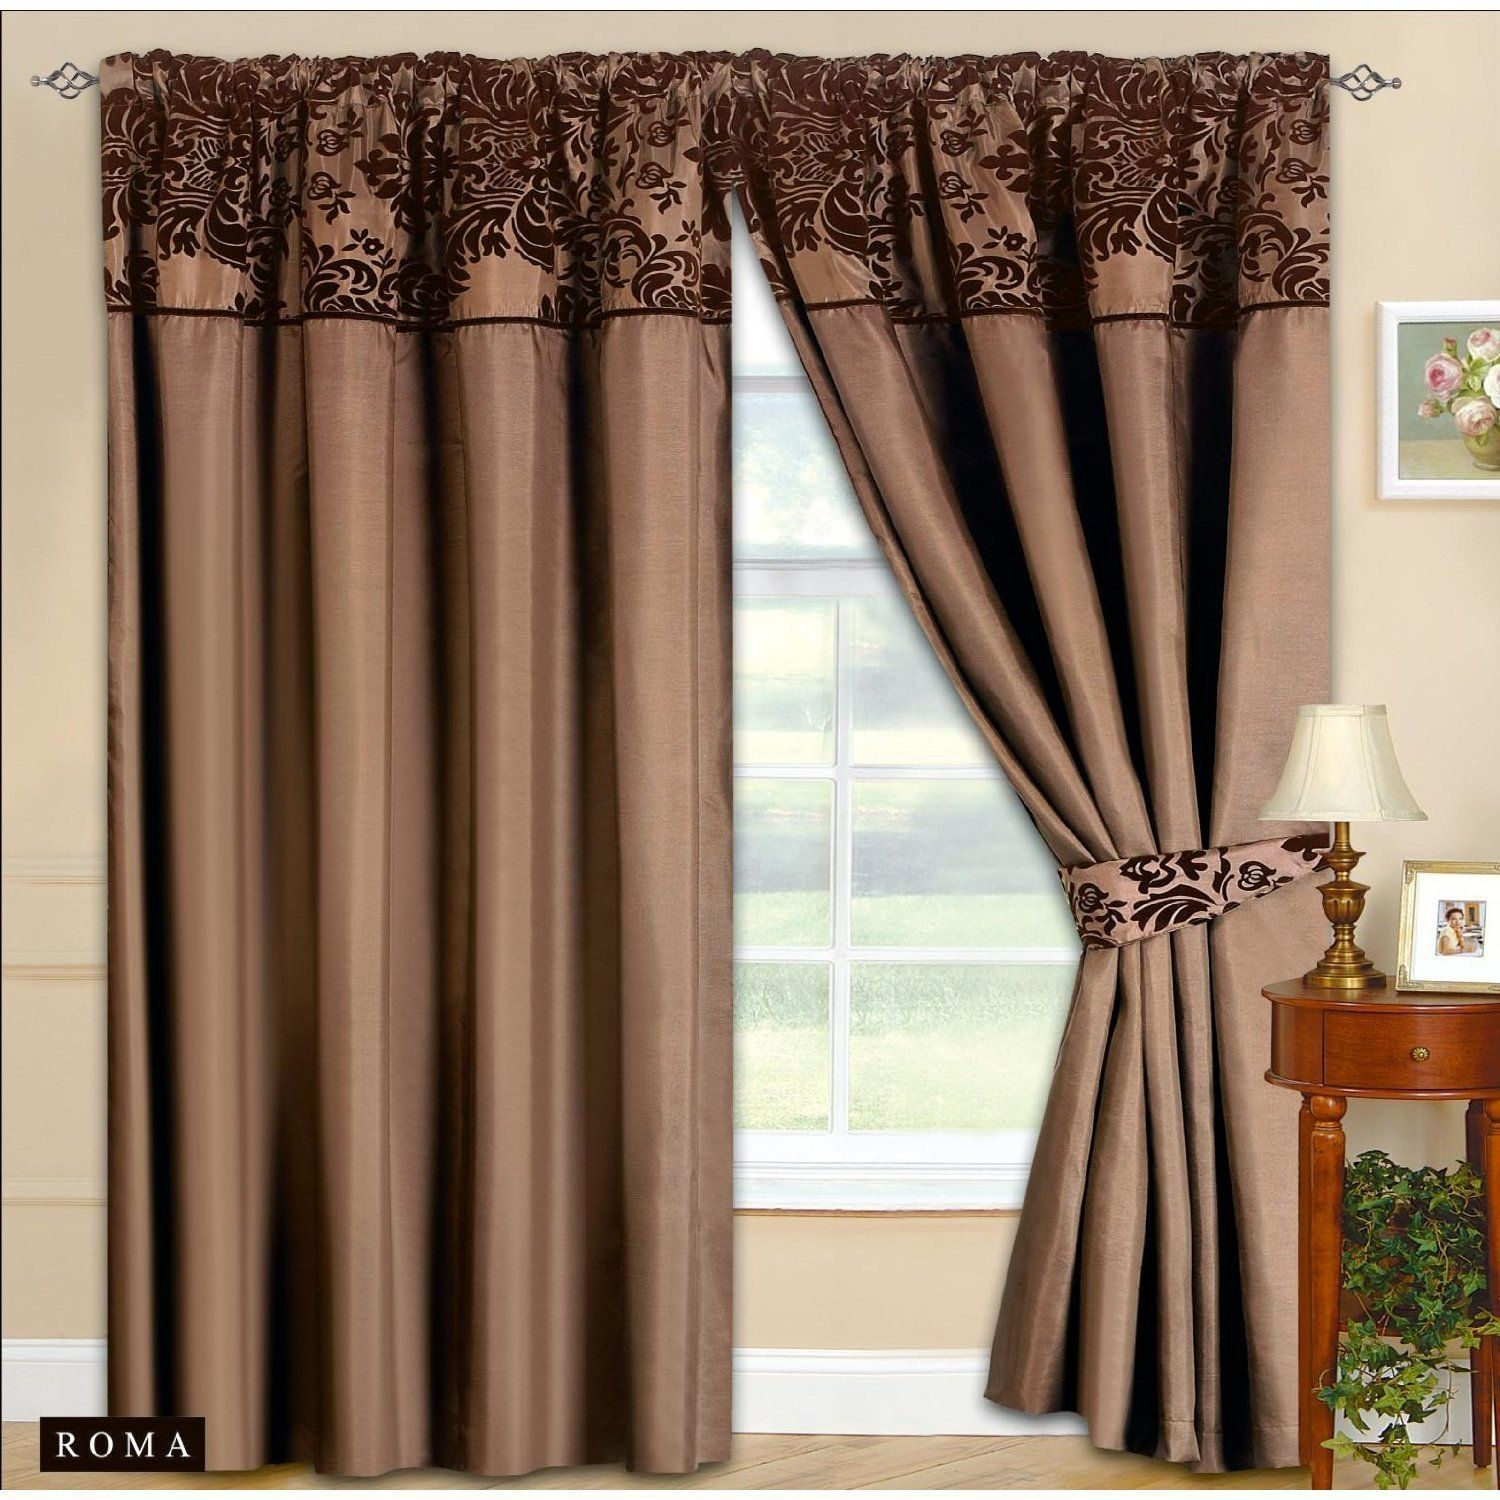 90 X90 Half Flock Pencil Pleat Luxurious Pair Of Curtains With Matching Tie Backs Brown Cho Brown Living Room Curtains Living Room Brown Furniture Living Room